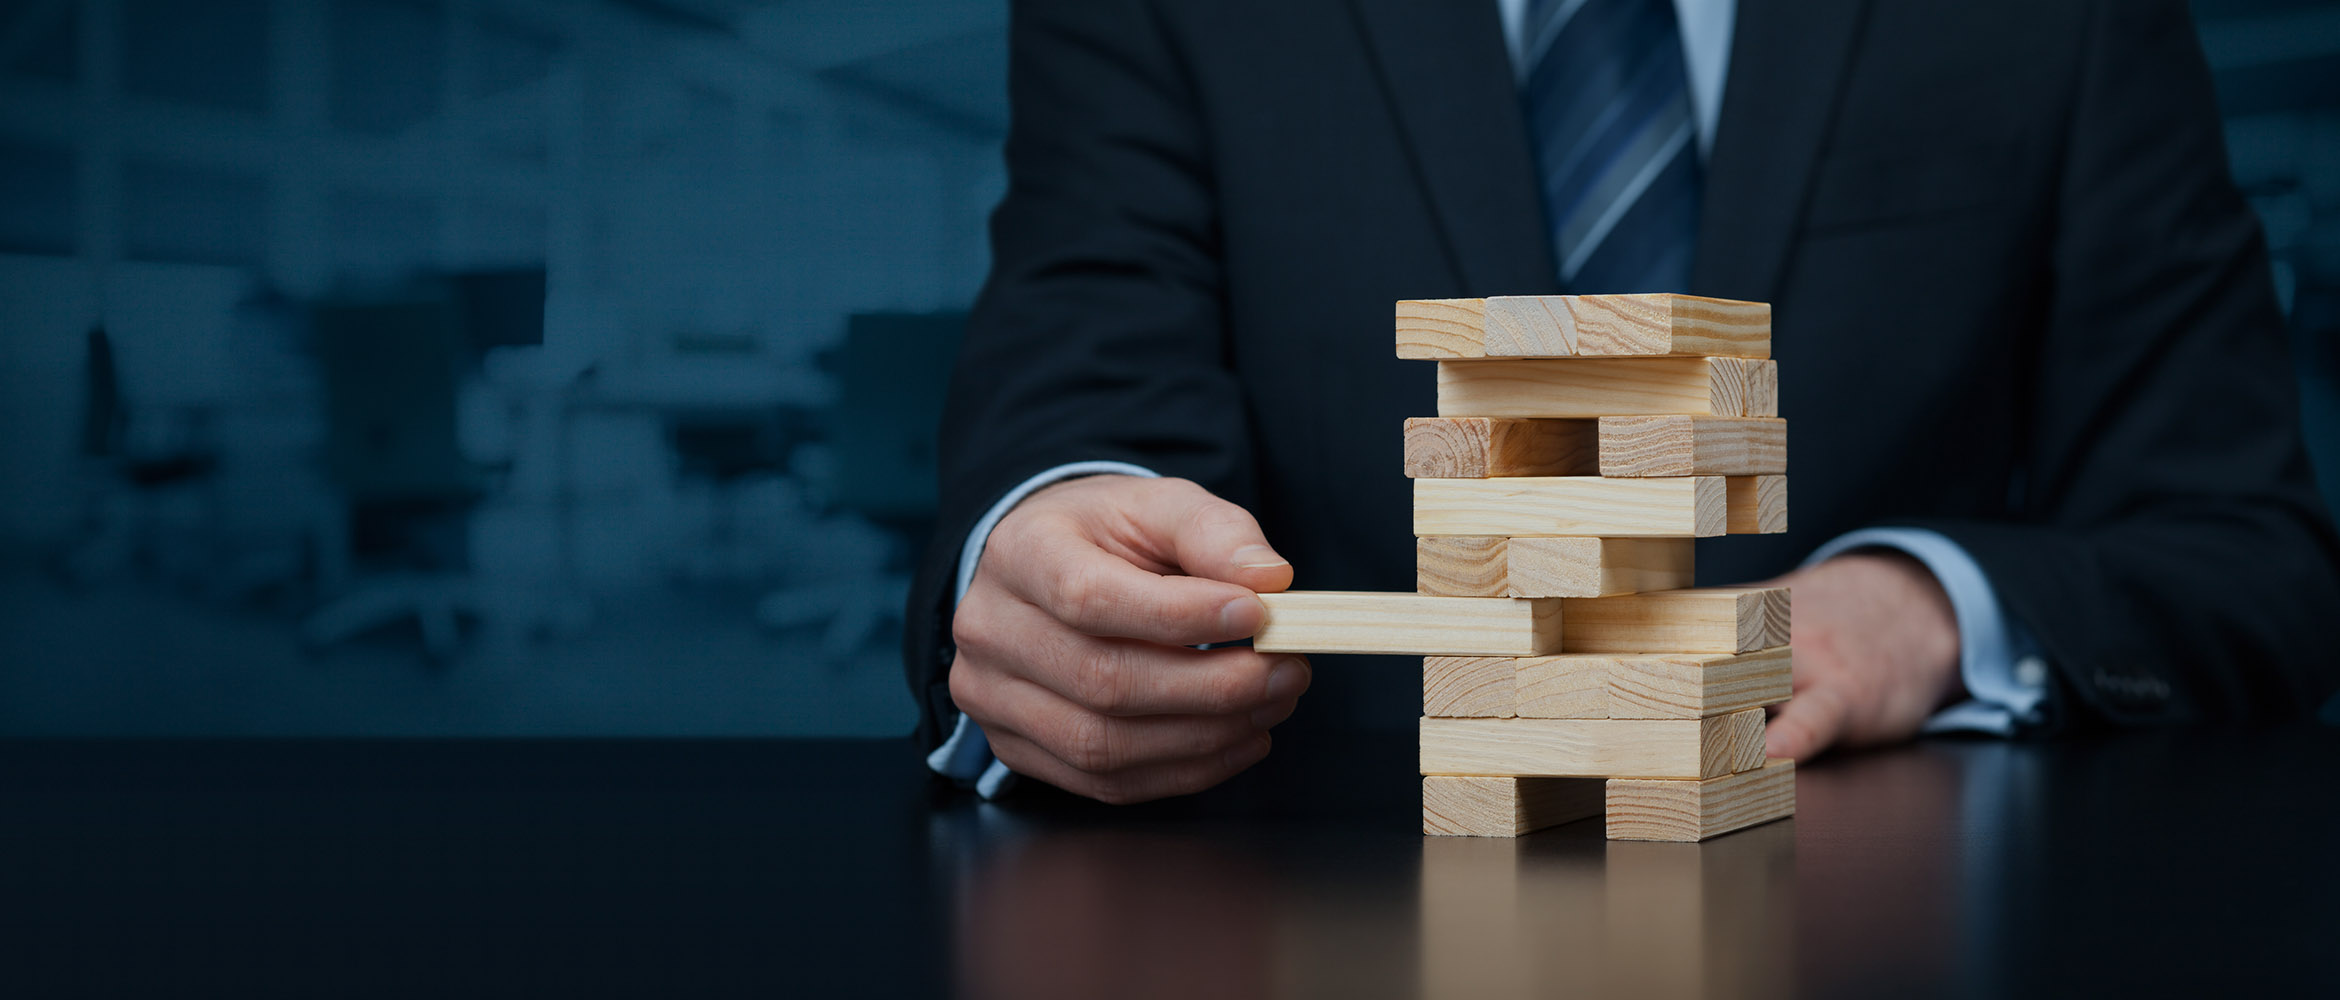 man in business suit removing block from block puzzle game as a metaphor for risk management related to commercial insurance